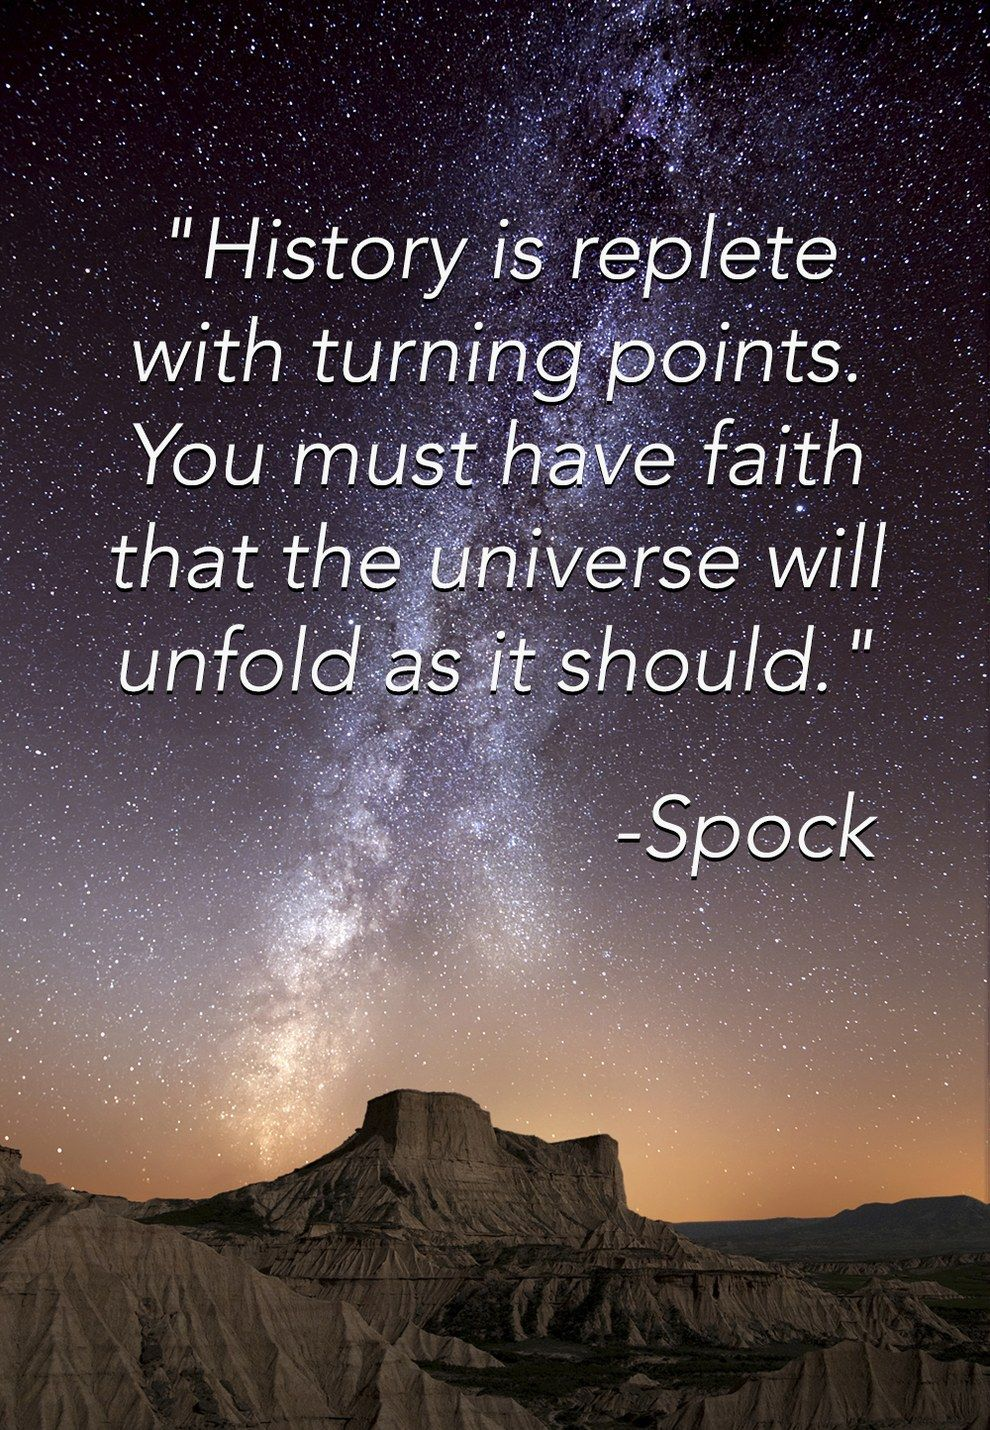 """""""History is replete with turning points. You must have faith that the universe will unfold as it should.""""  -- Spock  The 15 Greatest Spock Quotes As Motivational Posters"""